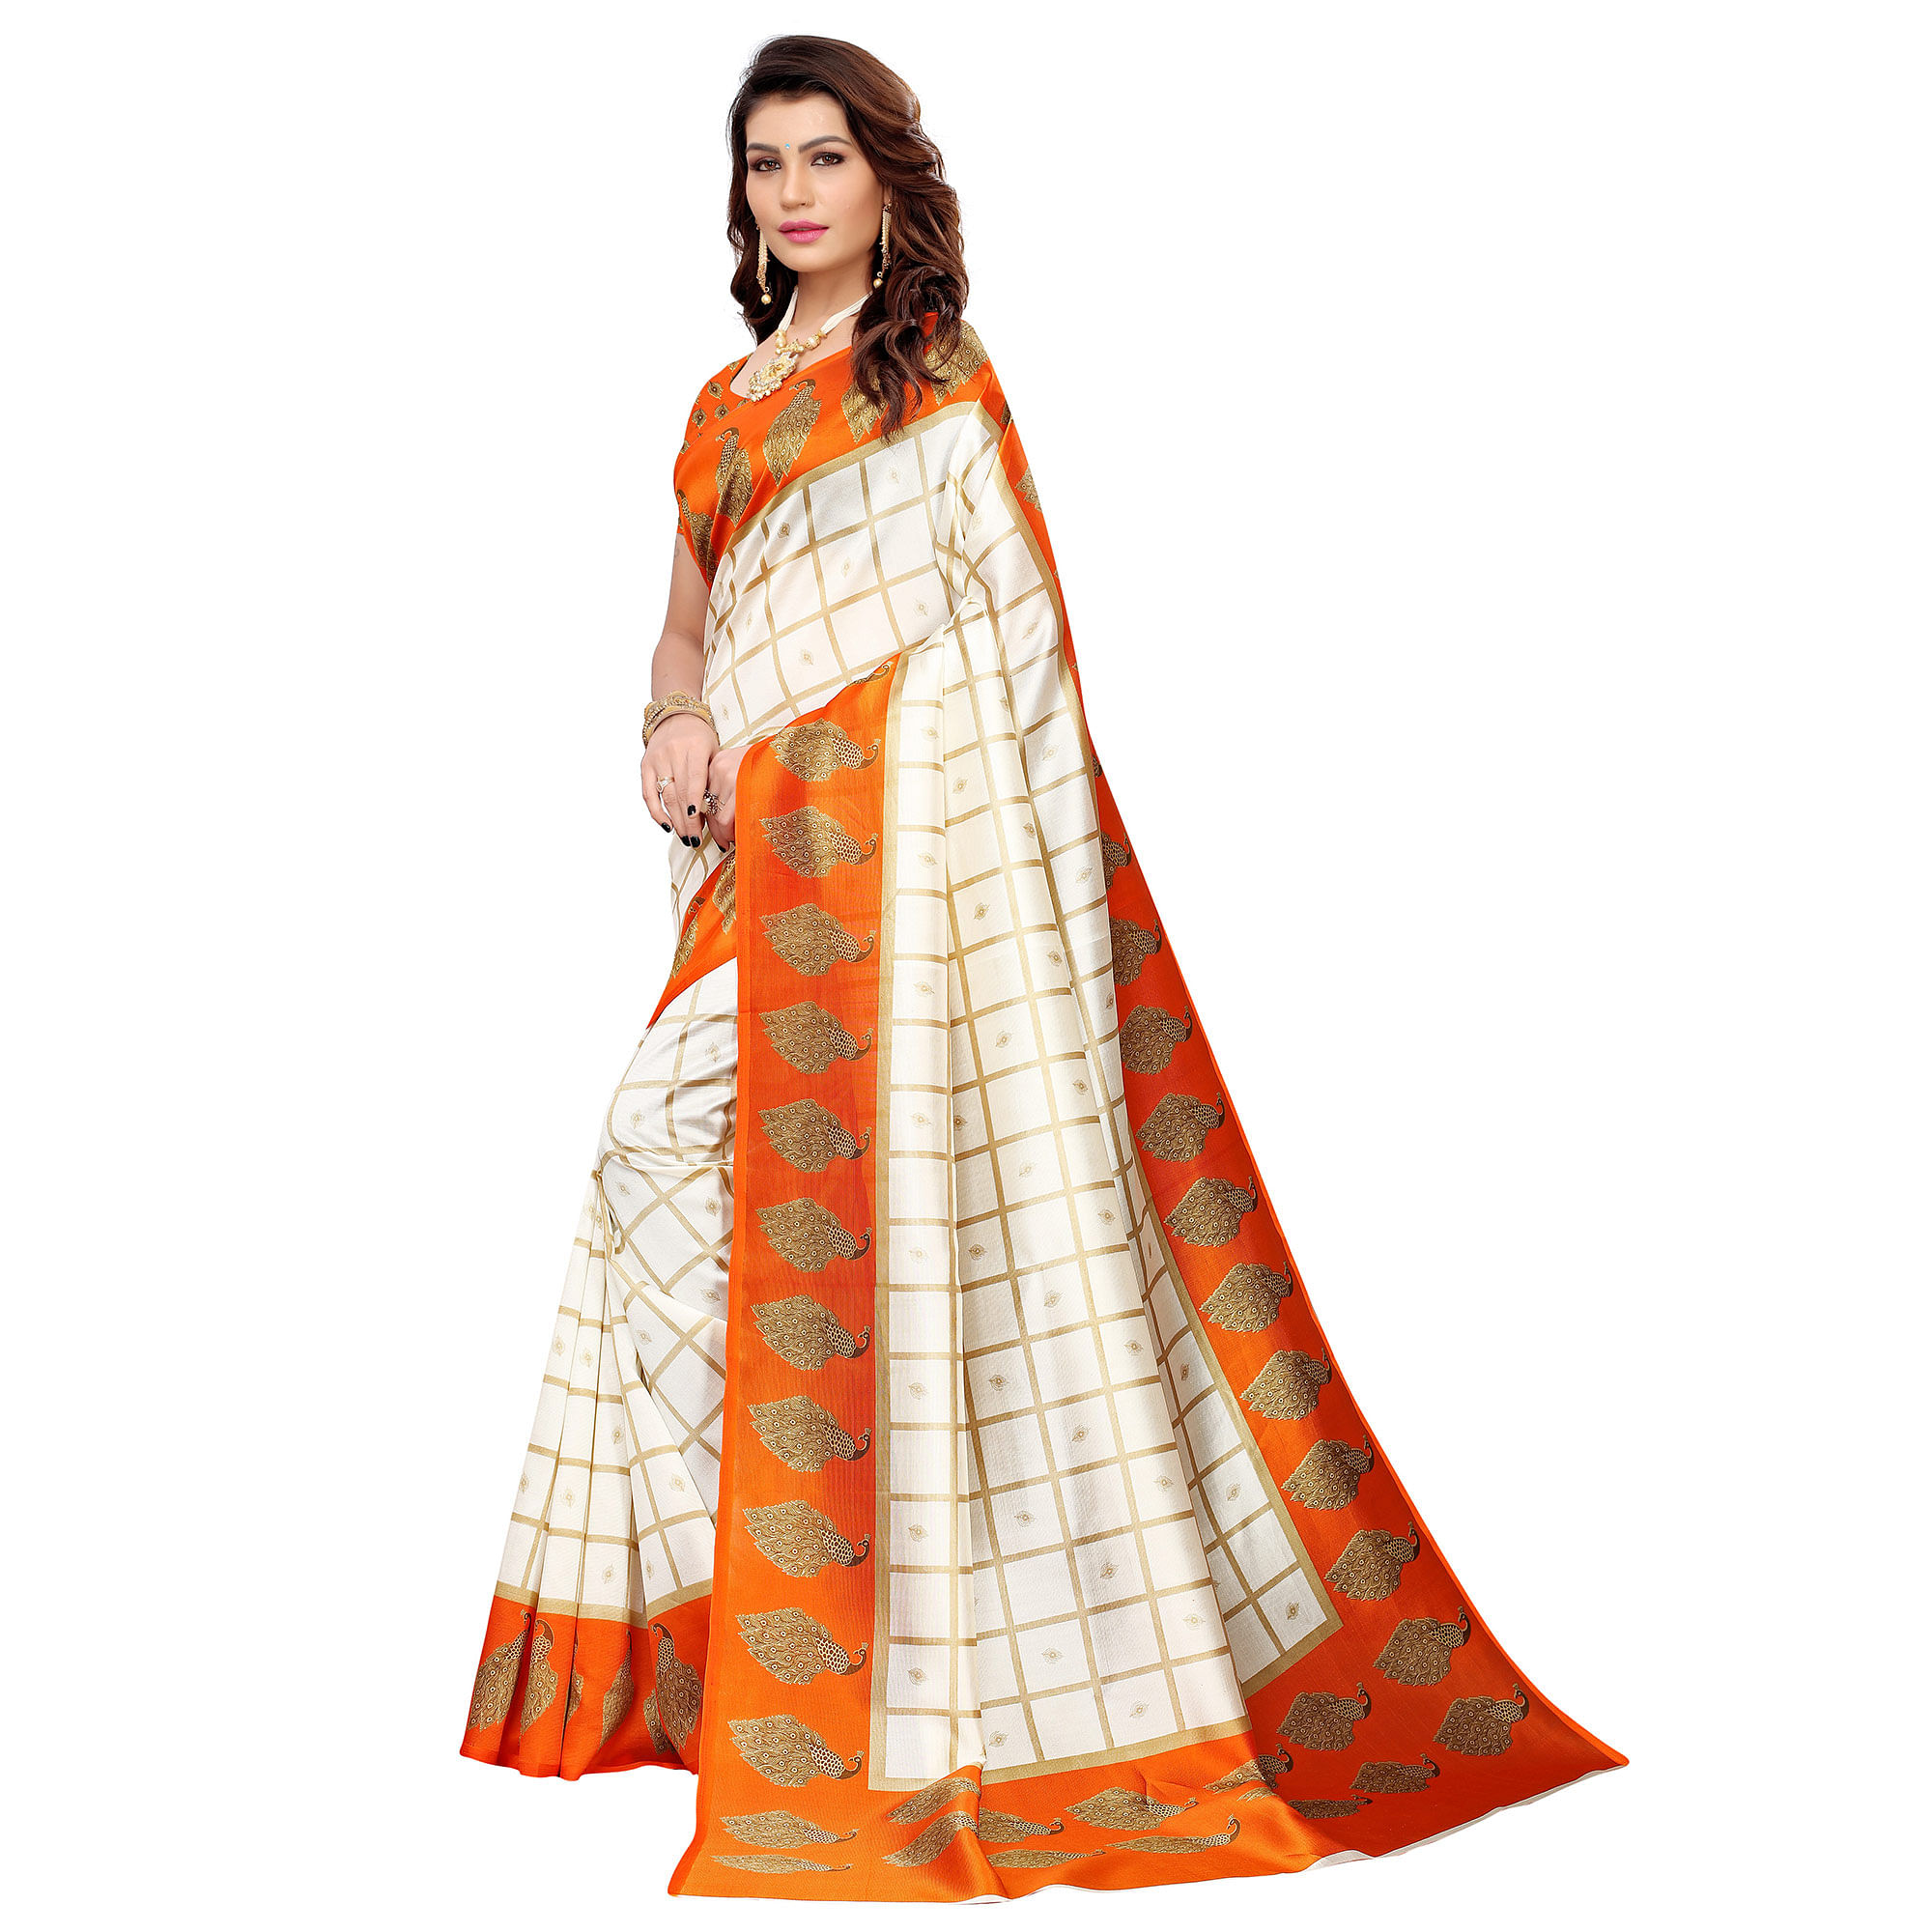 Ravishing Off White-Orange Colored Casual Printed Mysore Silk Saree